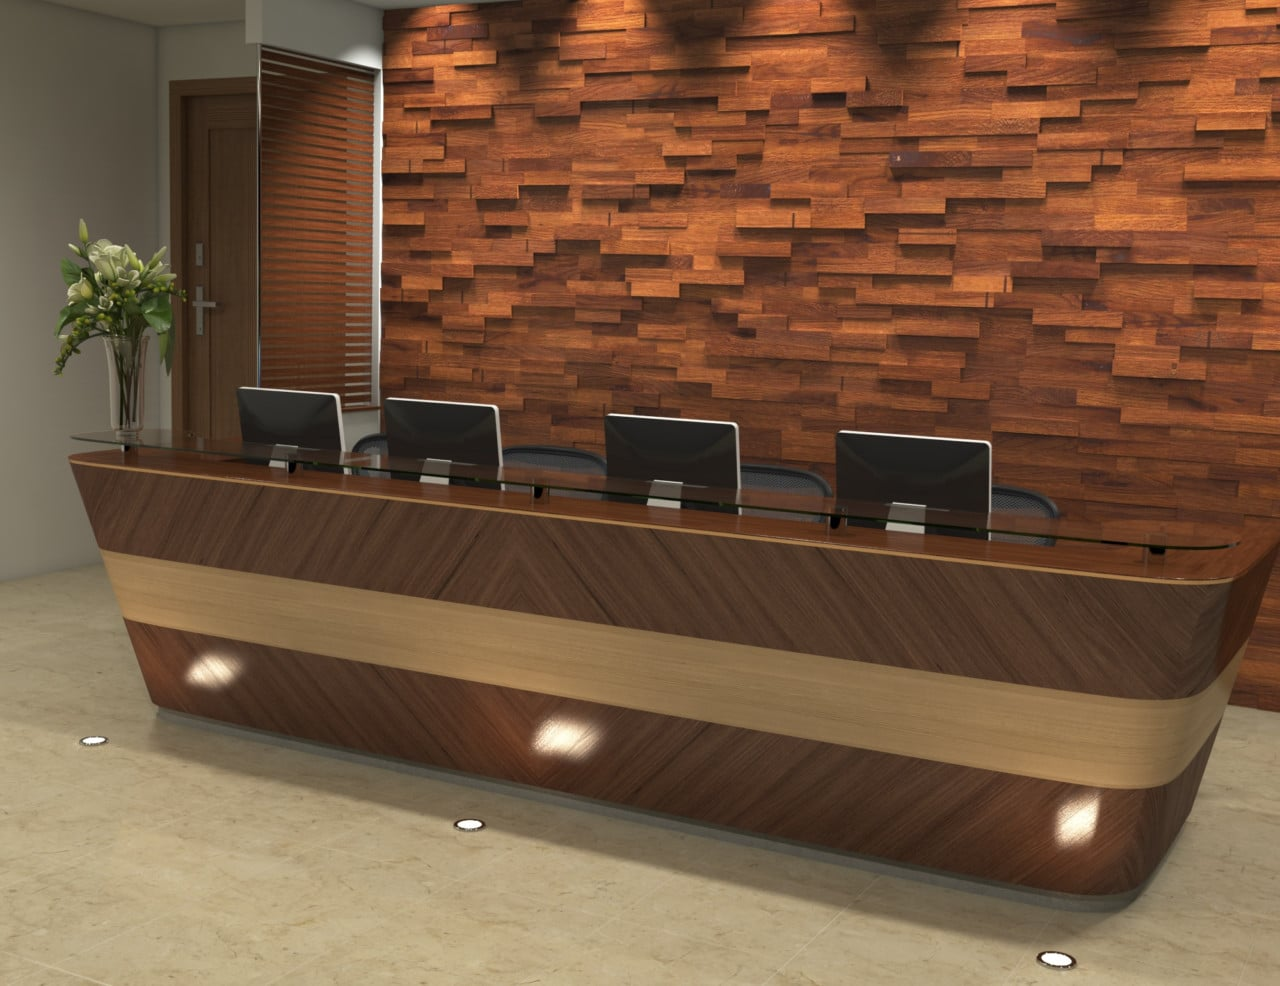 Wooden Wall Boards : Wood wall paneling teak real panels for interior walls